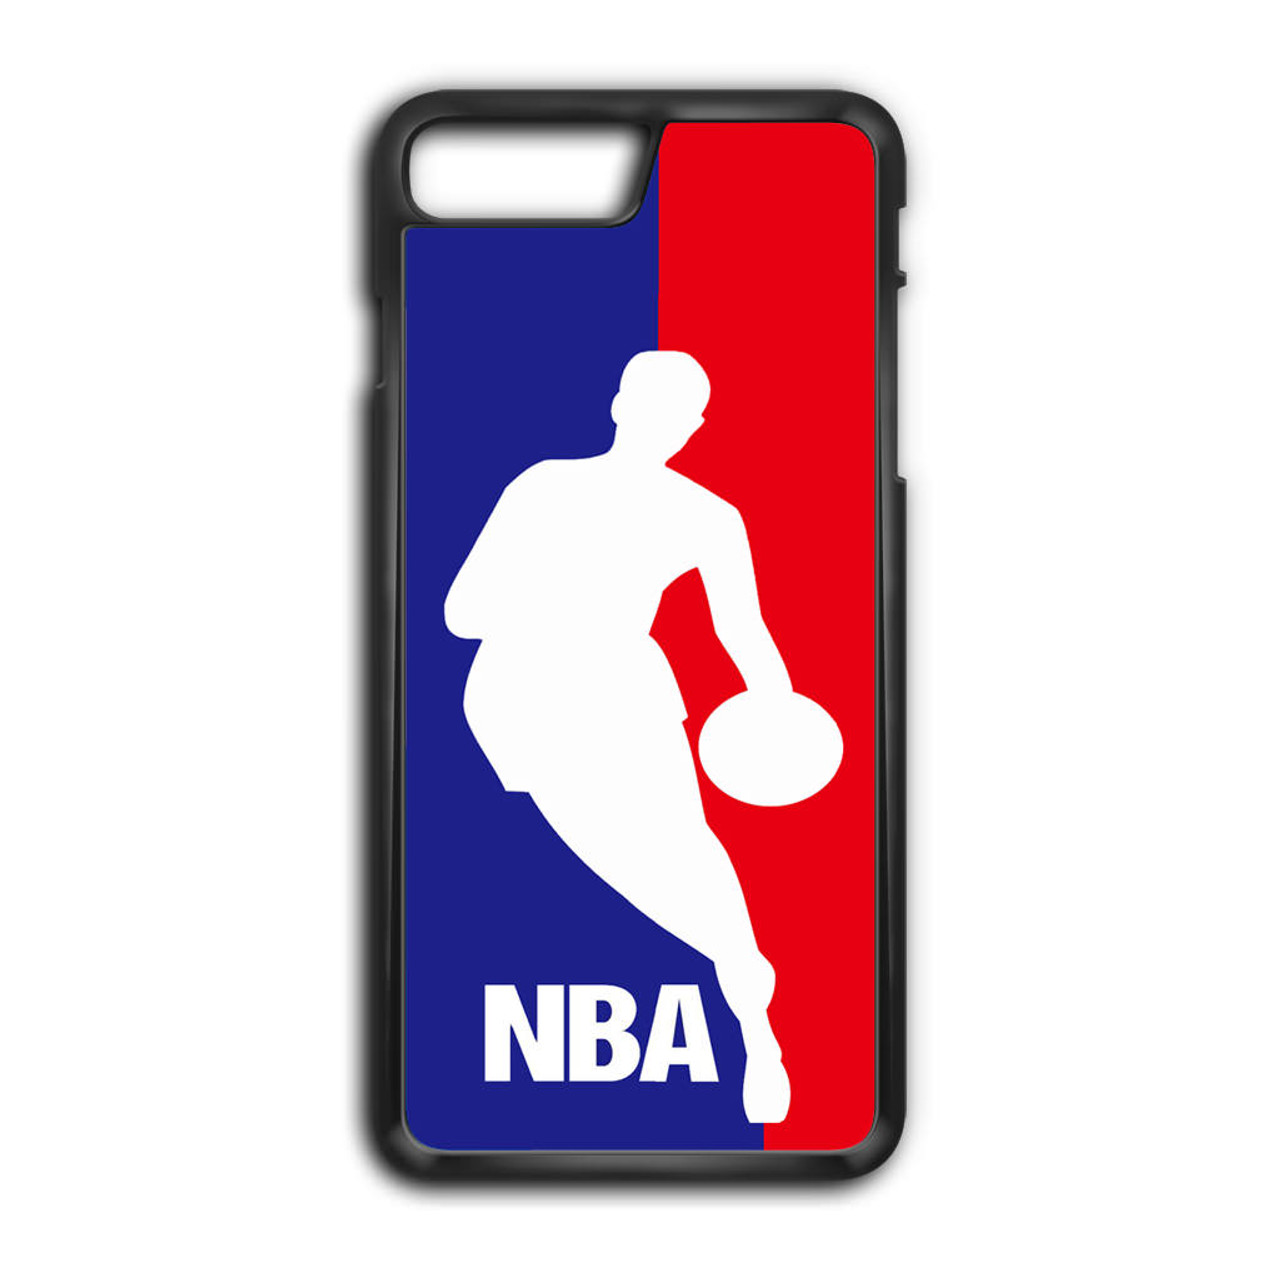 low priced 1f1bb 5f217 NBA Basketball iPhone 7 Plus Case